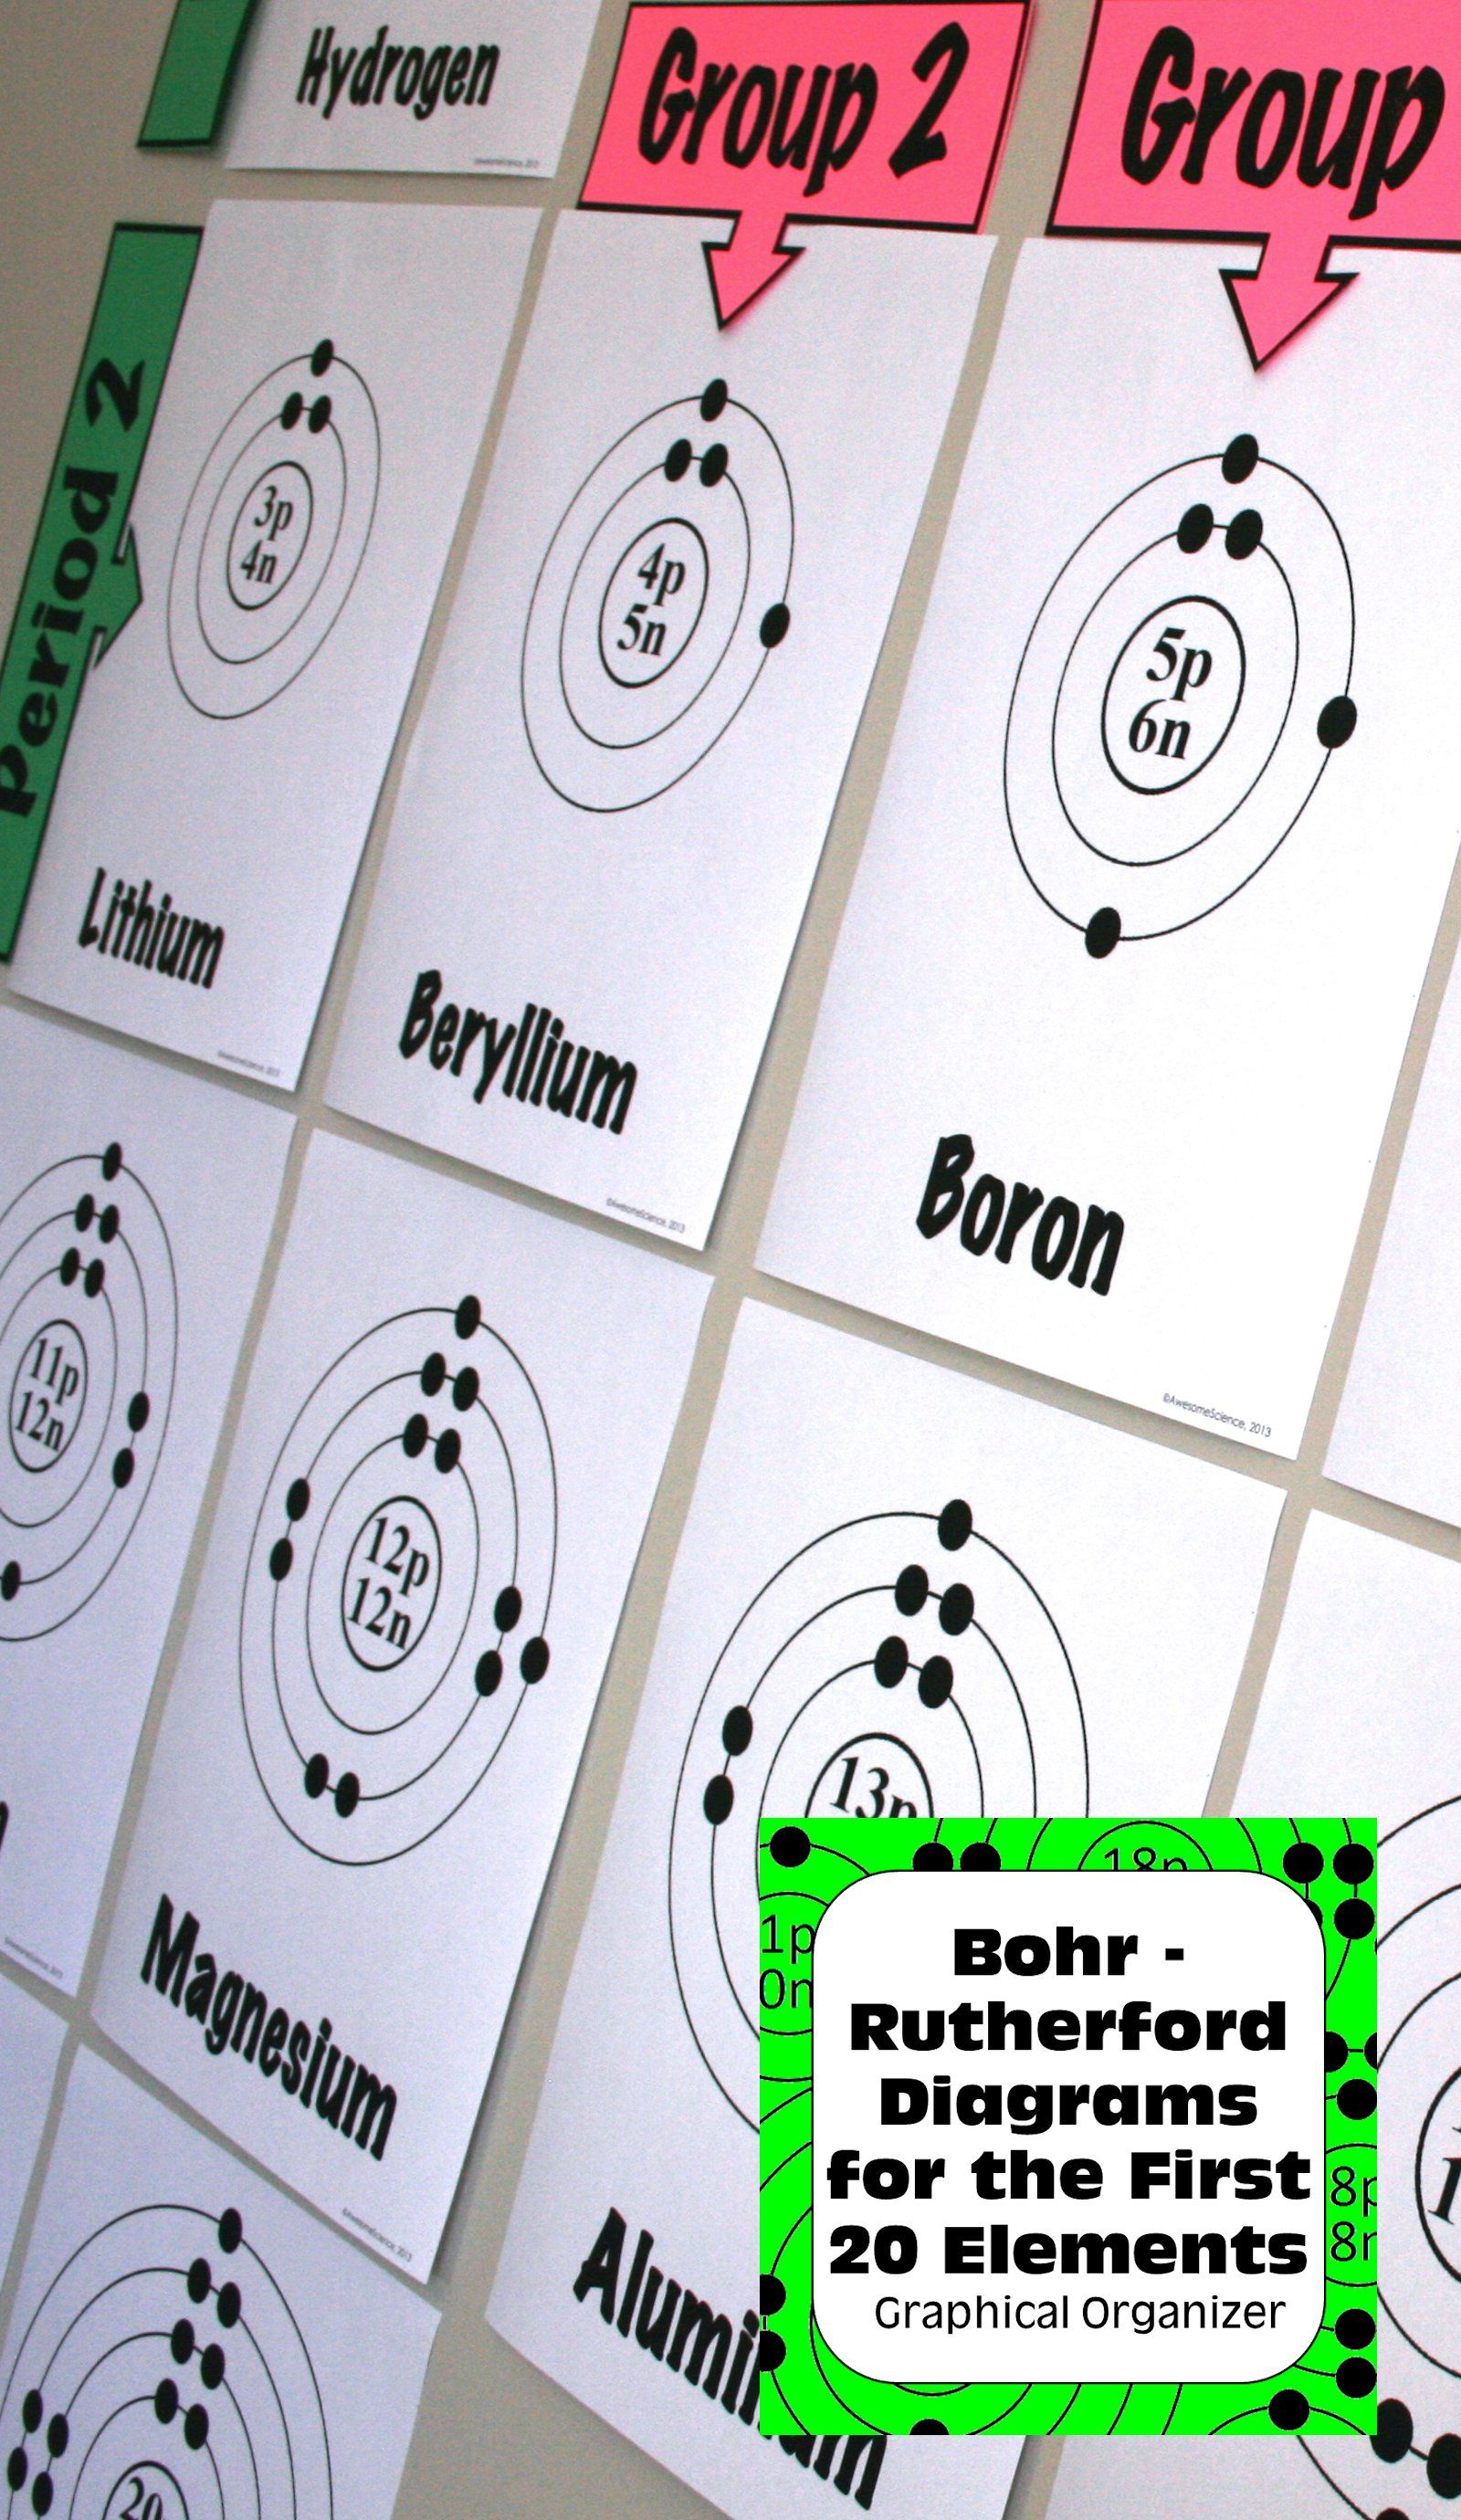 Bohr models bohr rutherford diagrams for the first twenty elements great transition to patterns in the periodic table periods and groups post to your classroom walls for student self assessment or create a large urtaz Choice Image